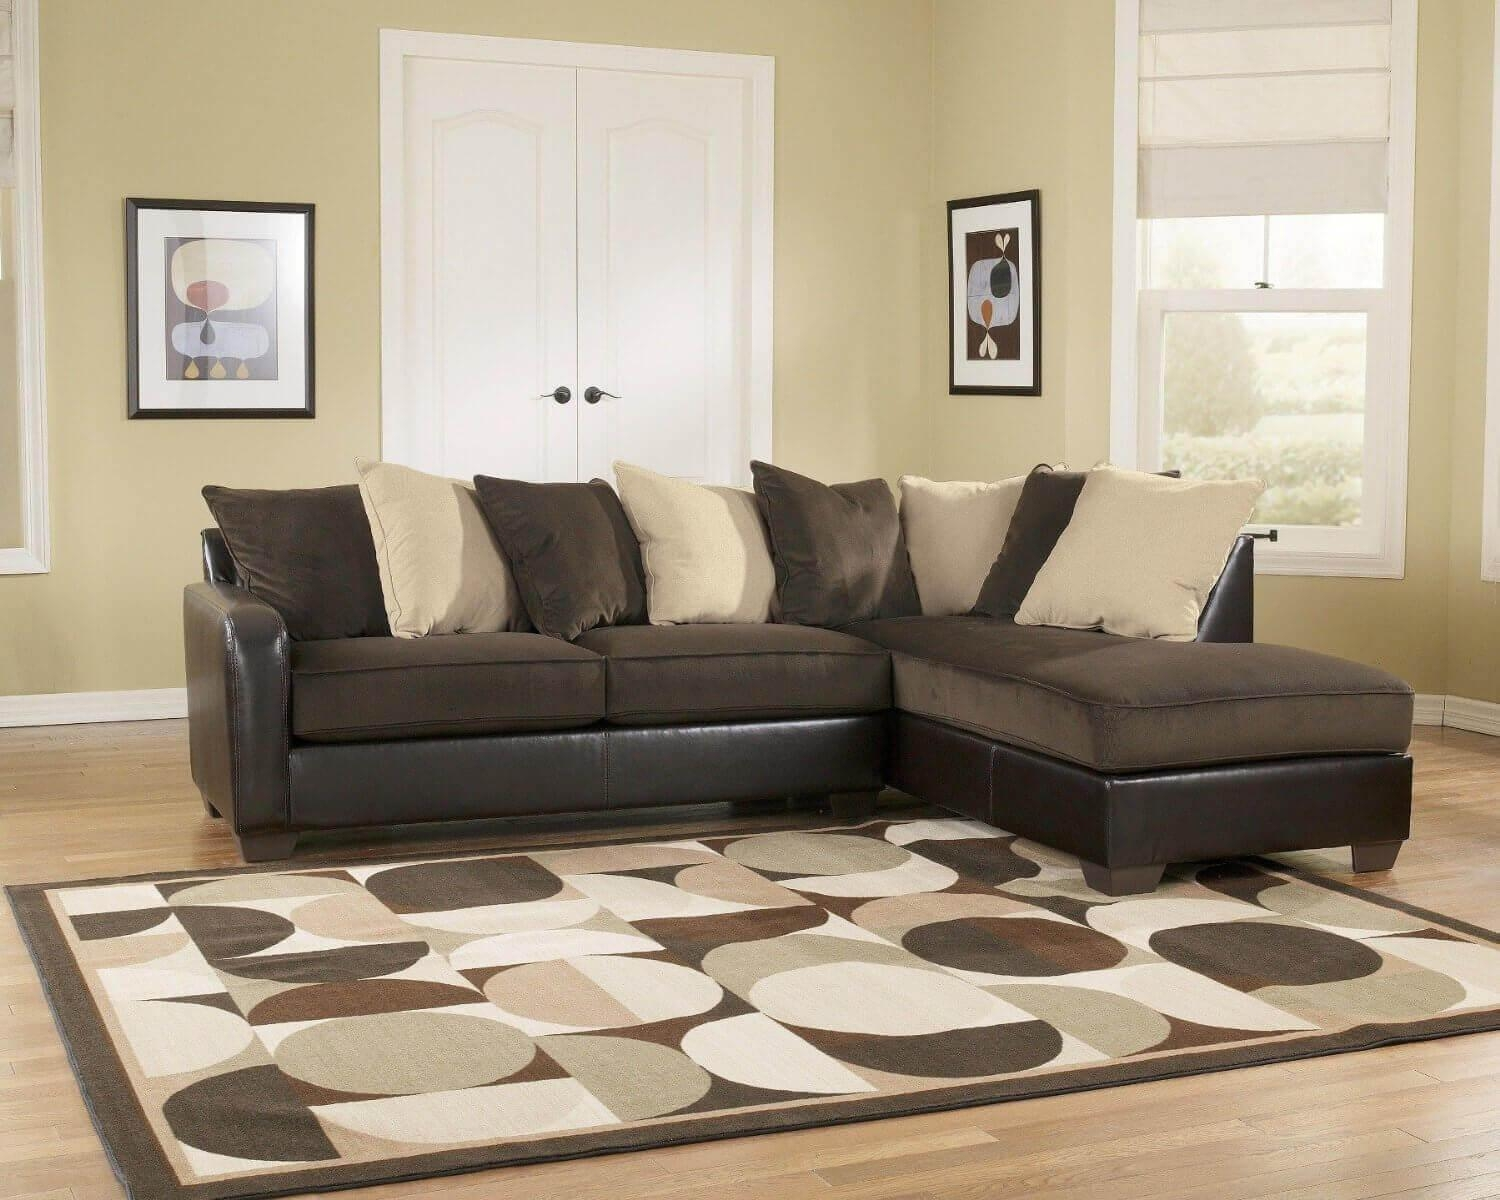 Furniture: Contemporary Sectional Sofas | Sectional Leather Sofa Inside Leather Sofa Sectionals For Sale (View 12 of 20)